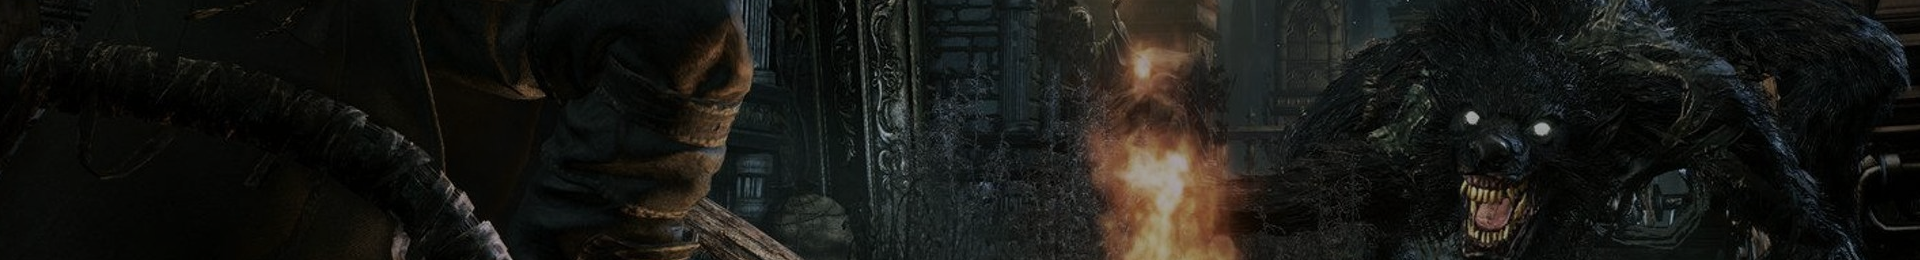 Even in a dream: Bloodborne, hope, and keeping horror cosmic